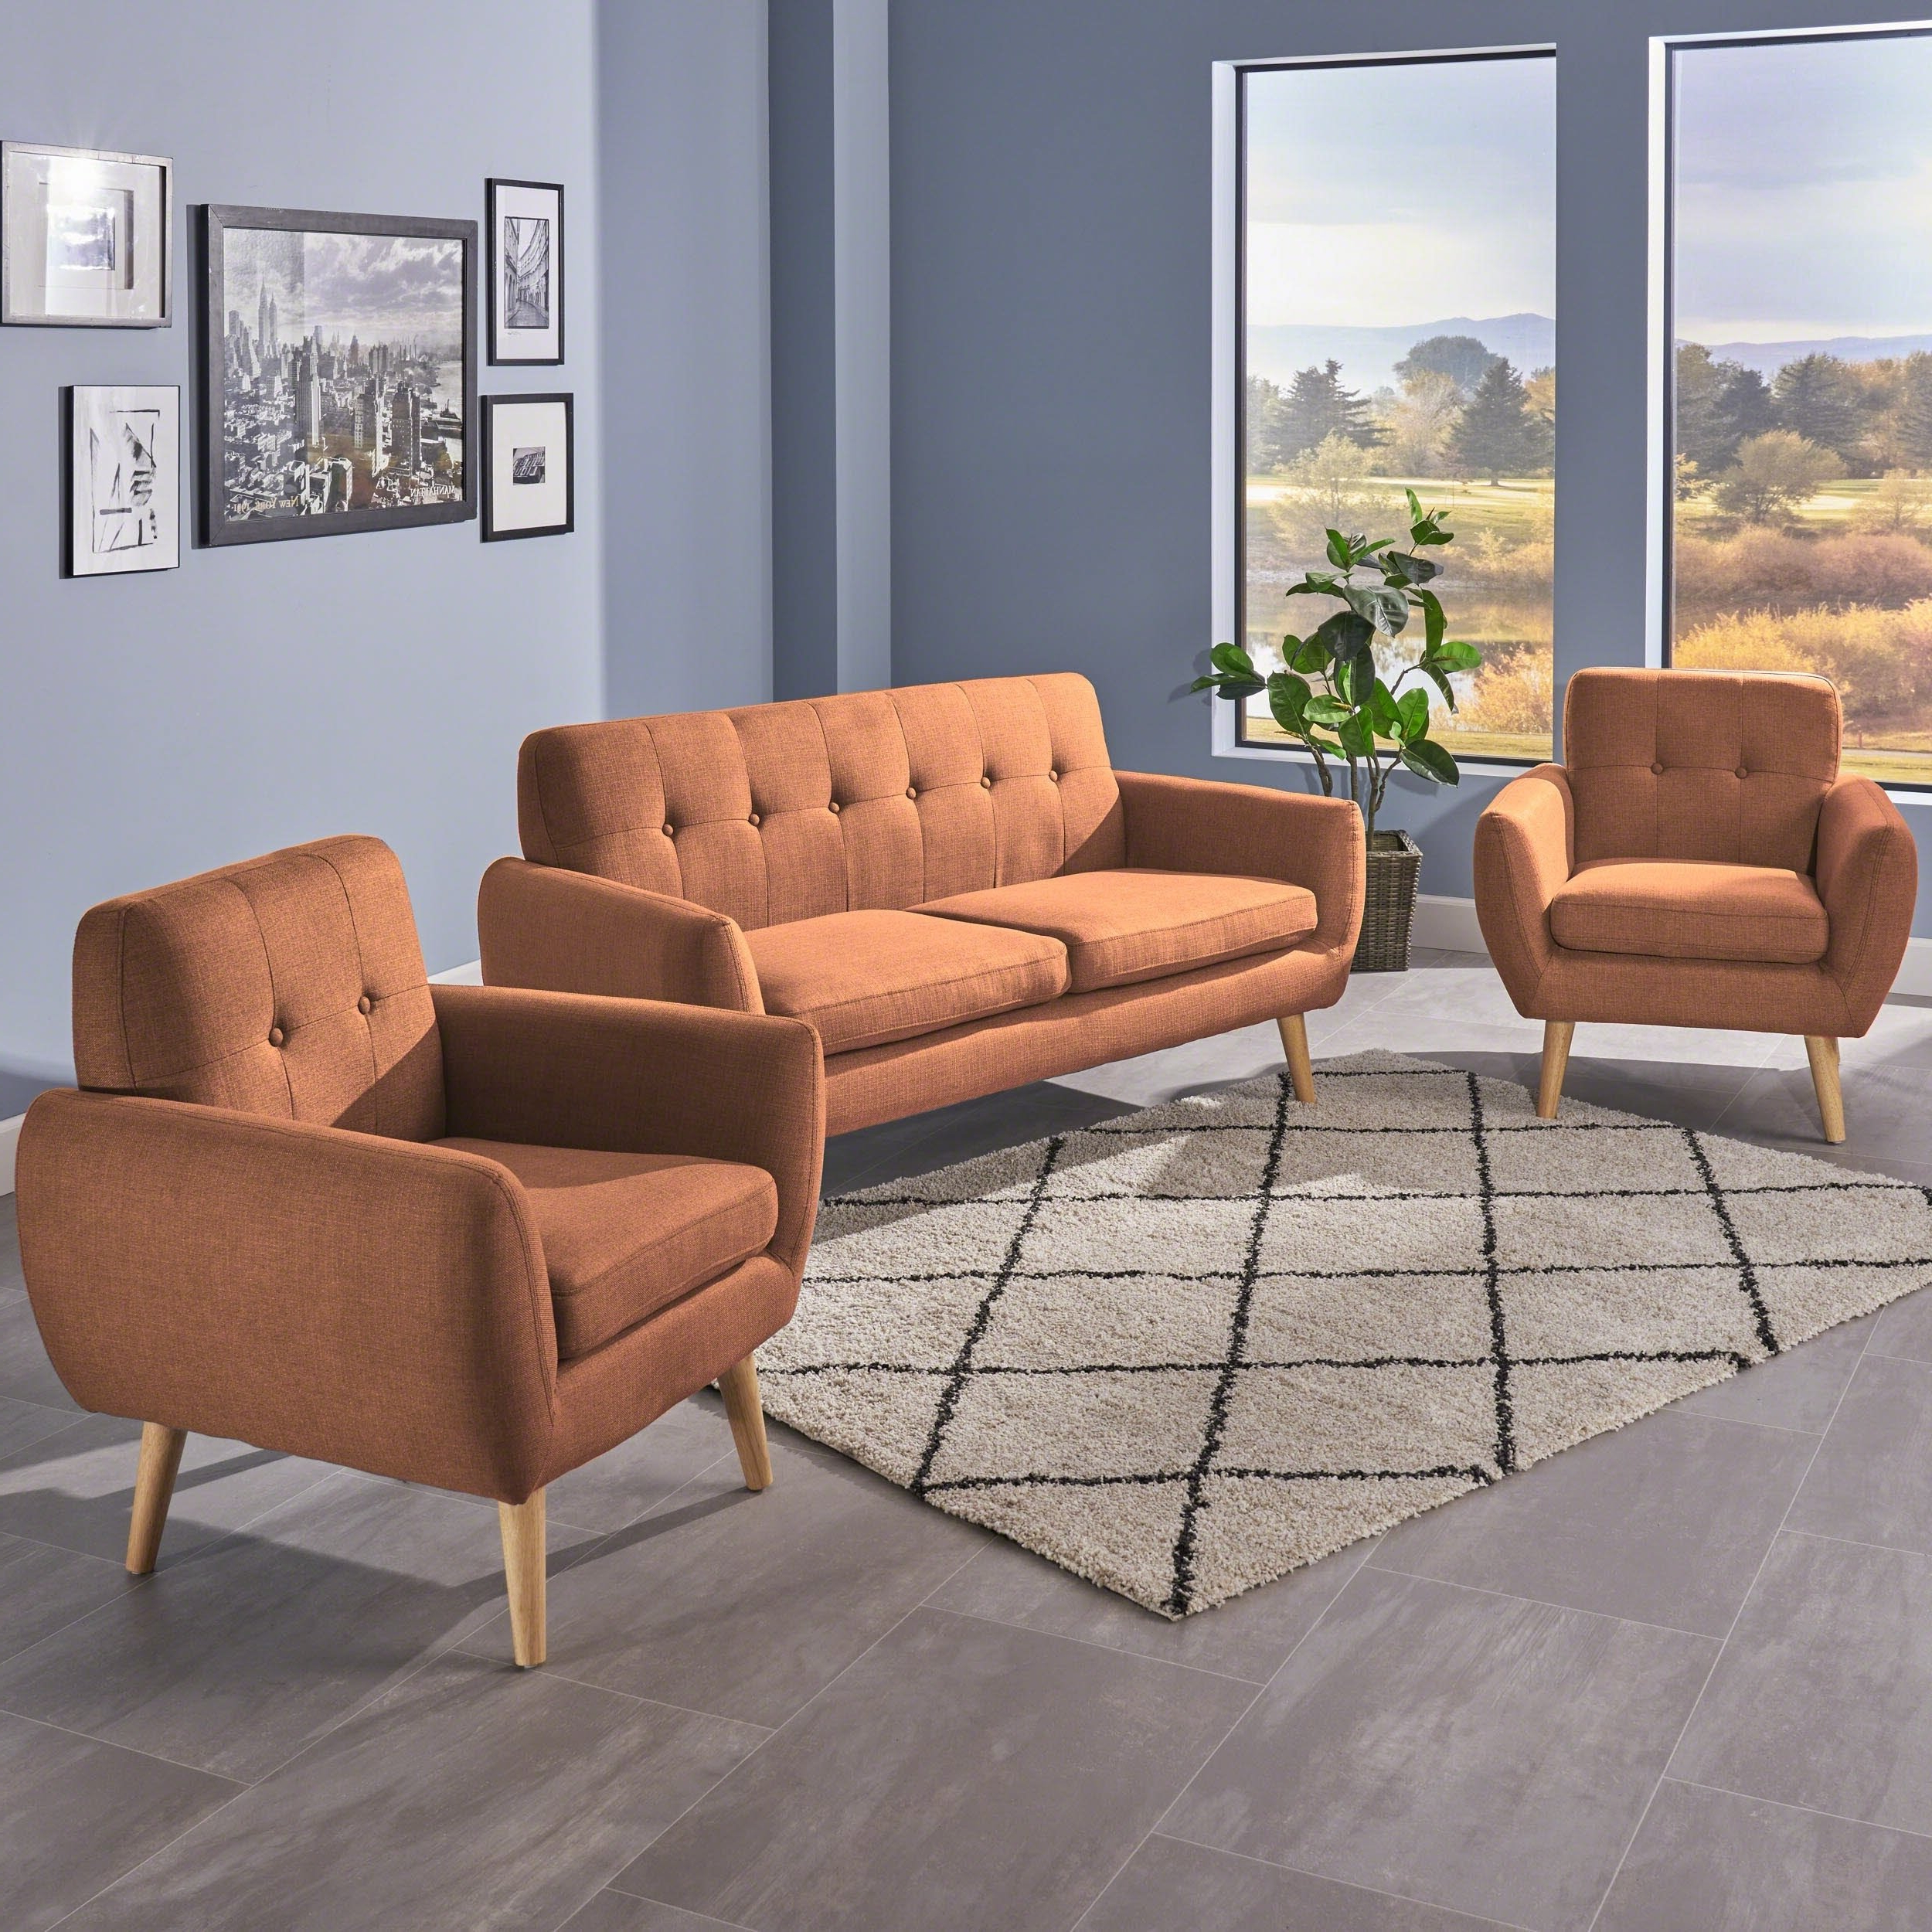 Josephine 2 Piece Sectionals With Raf Sofa Intended For Fashionable Shop Josephine Mid Century Modern 3 Piece Petite Fabric Chat Set (Gallery 9 of 20)